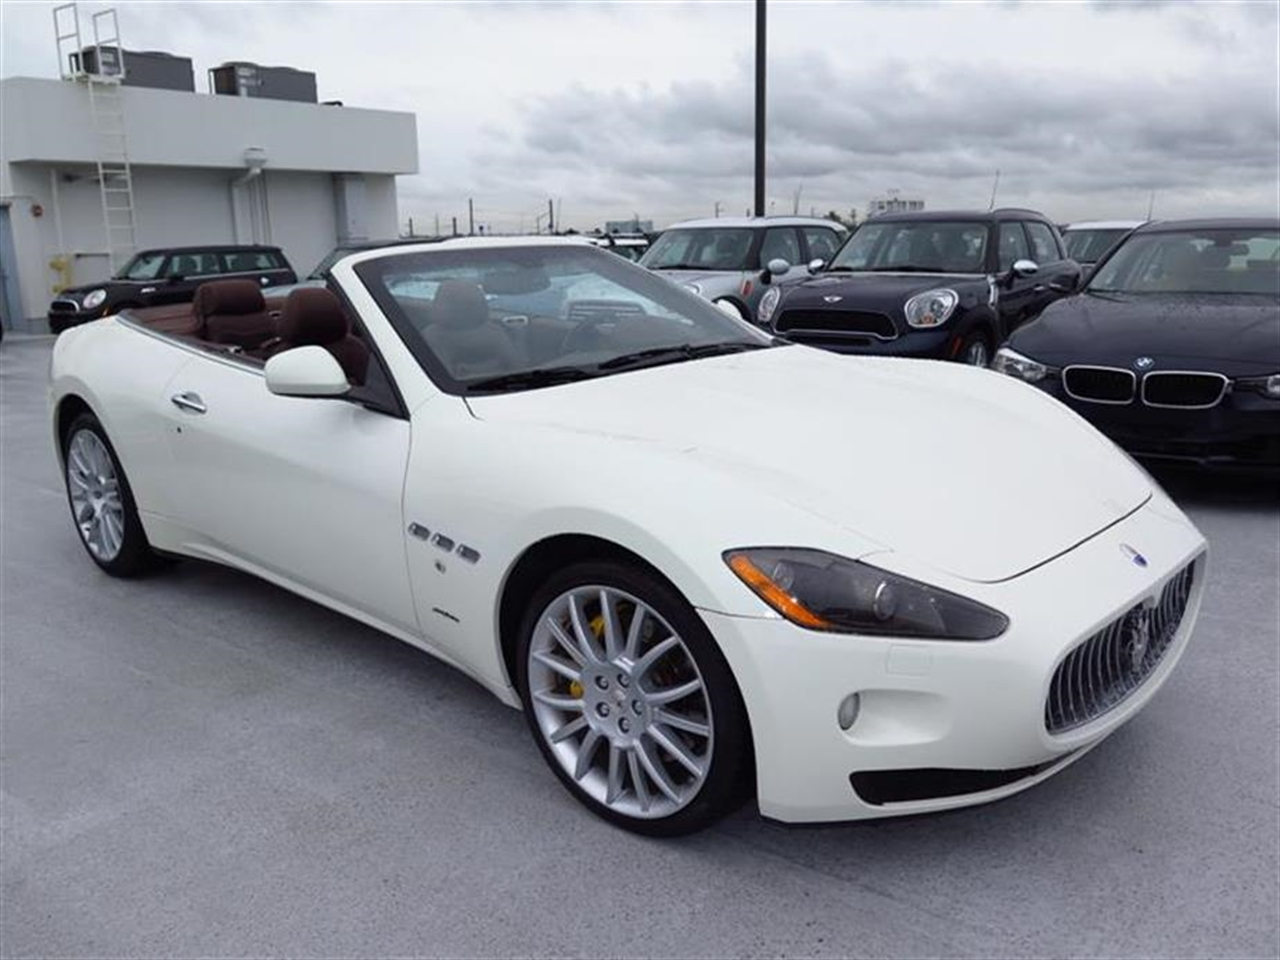 2012 MASERATI GRANTURISMO 2dr Conv GranTurismo 13237 miles 3-spoke black leather sports steering